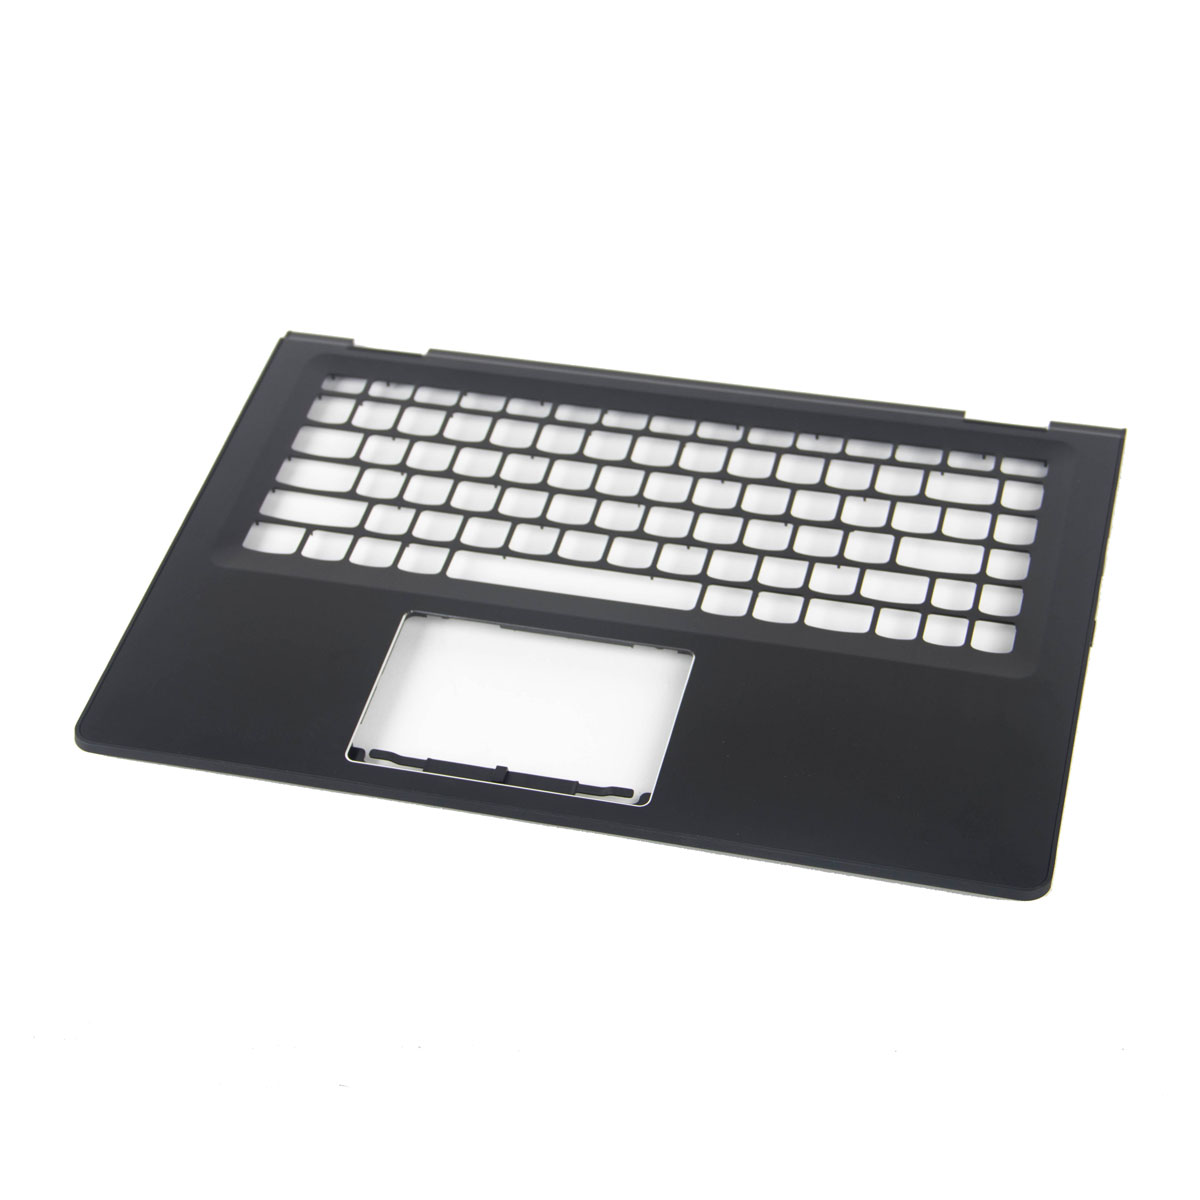 Palmrest Lenovo IdeaPad Flex 3 14 Yoga 500 czarny